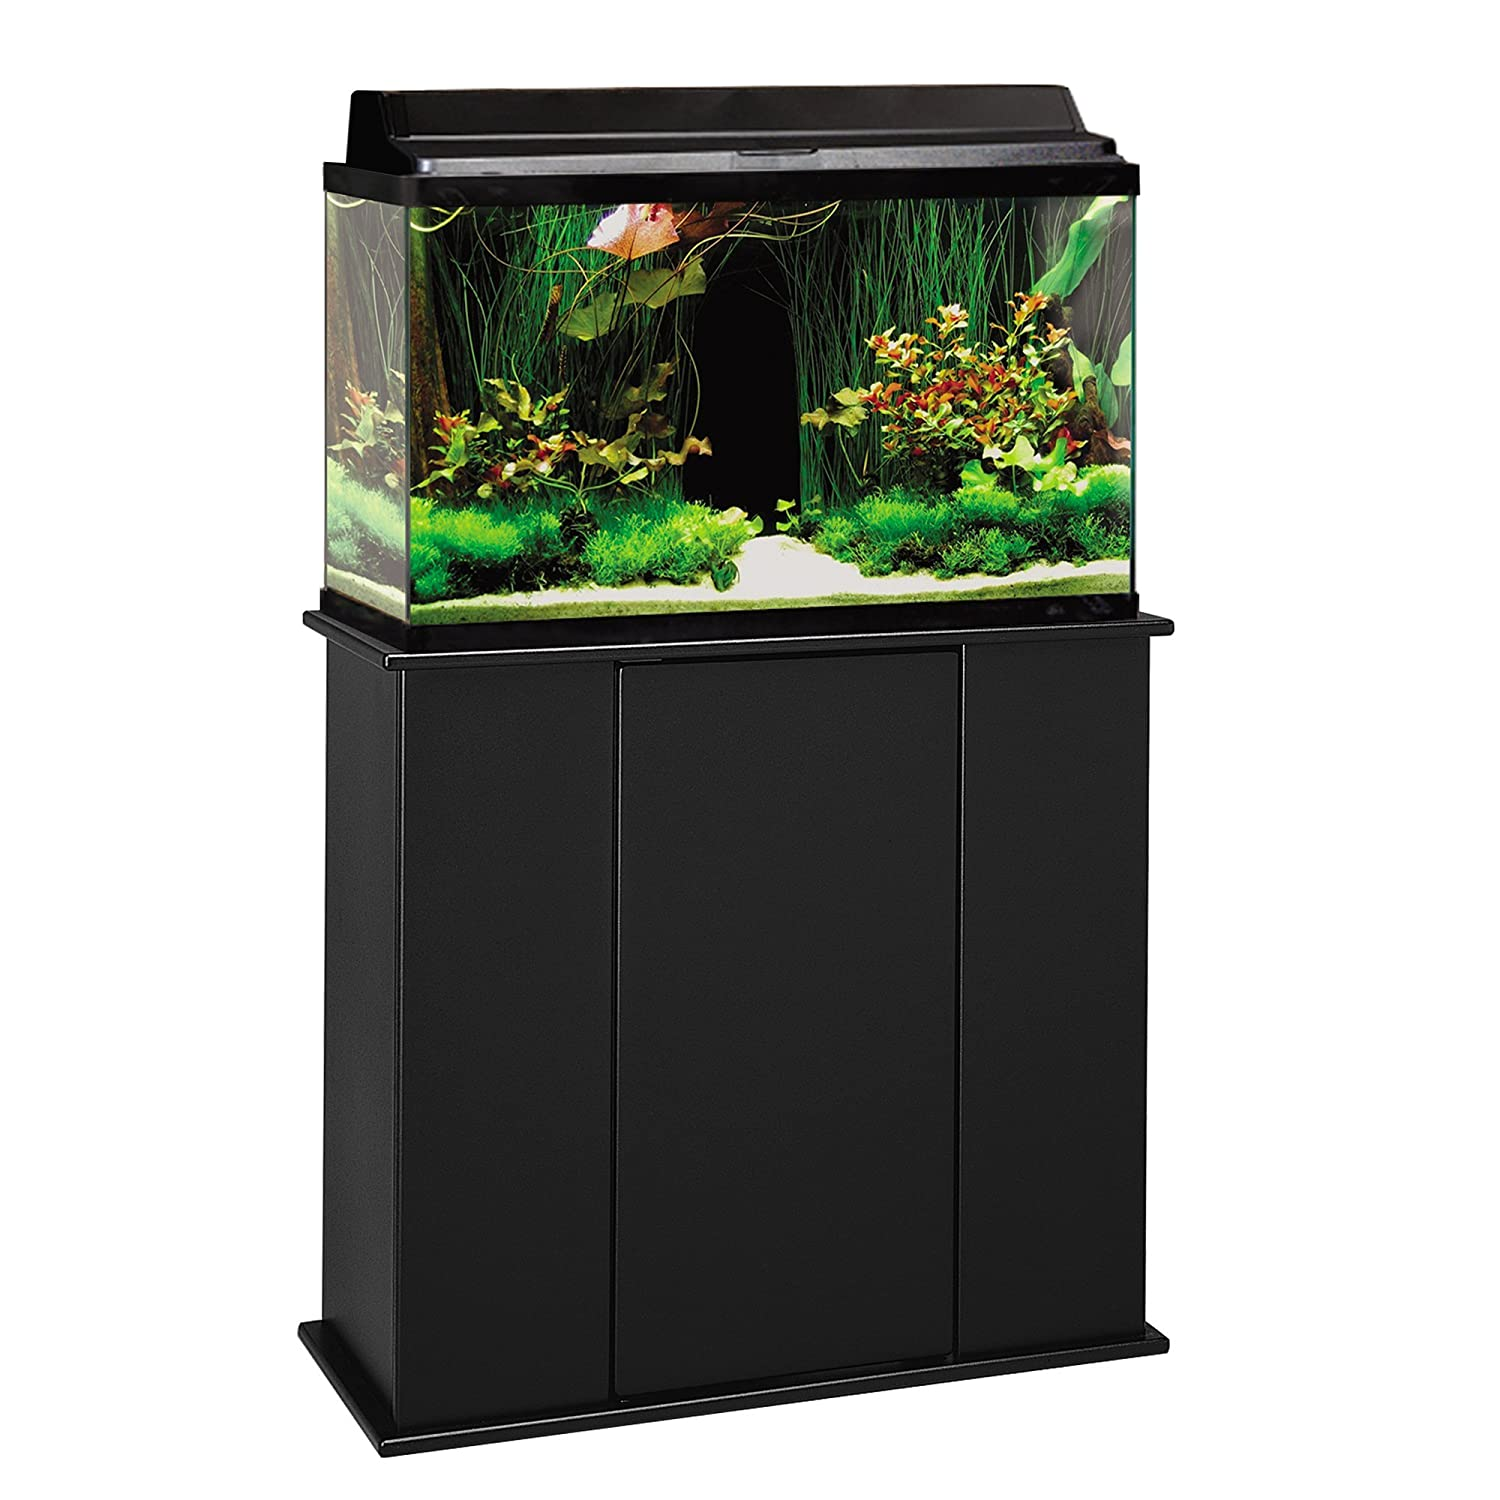 Amazon Aquatic Fundamentals Black Upright Aquarium Stand for